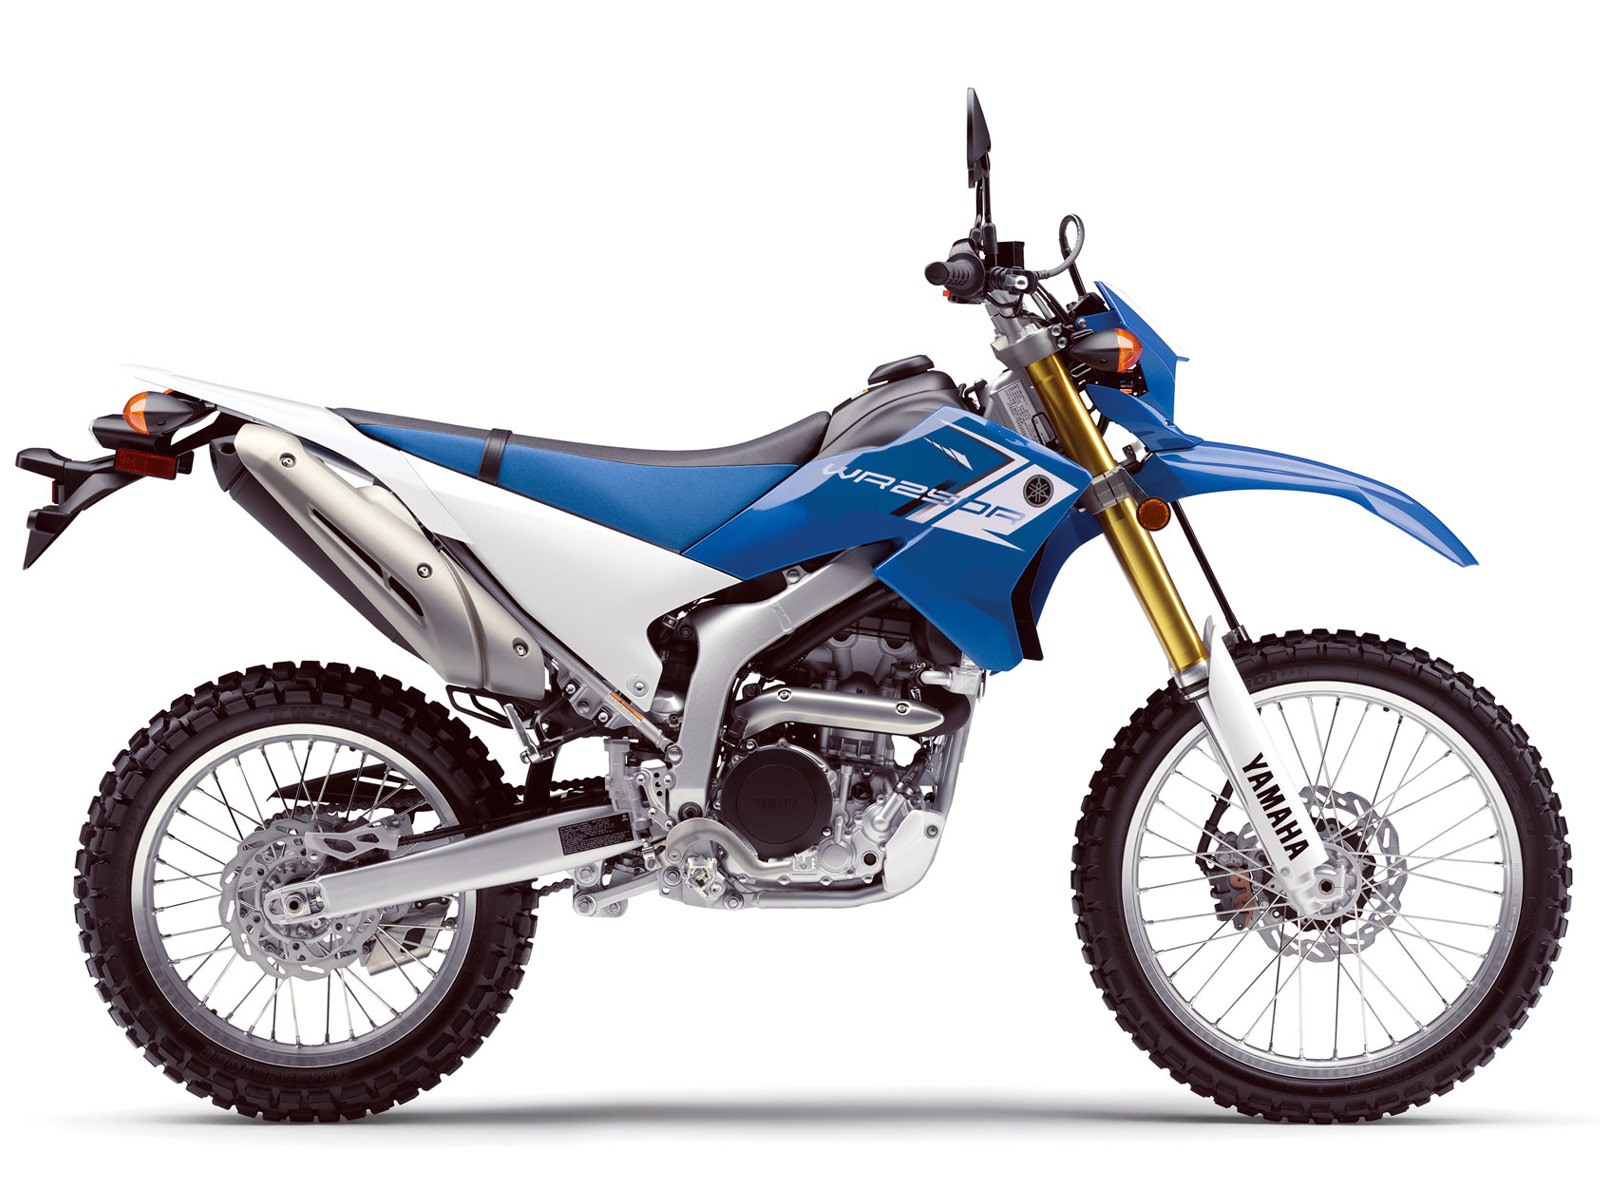 2014 wr250r yamaha pictures review specifications. Black Bedroom Furniture Sets. Home Design Ideas